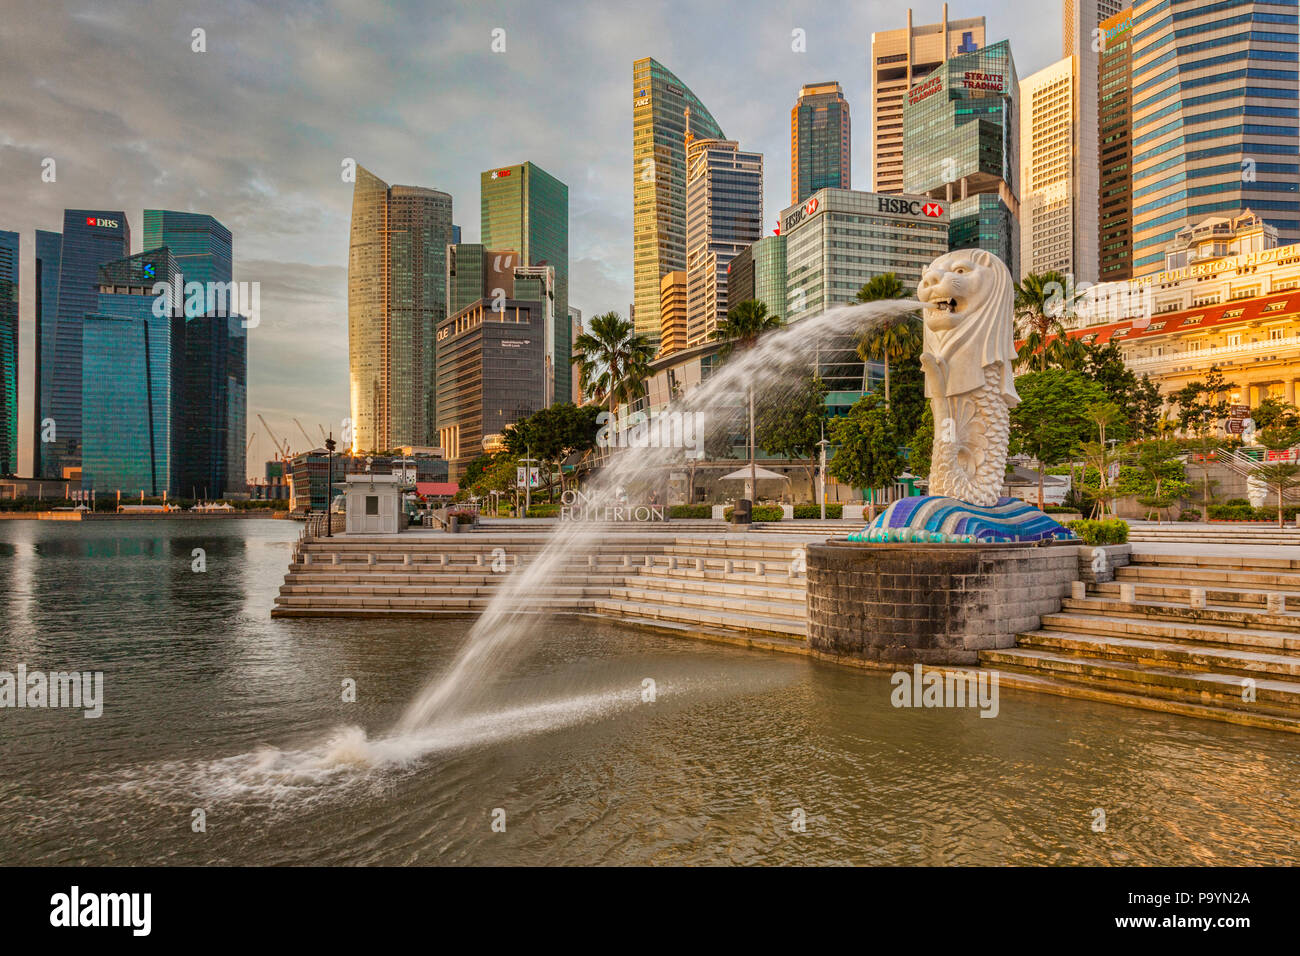 Singapore skyline with the Merlion, One Fullerton and the Financial District. - Stock Image